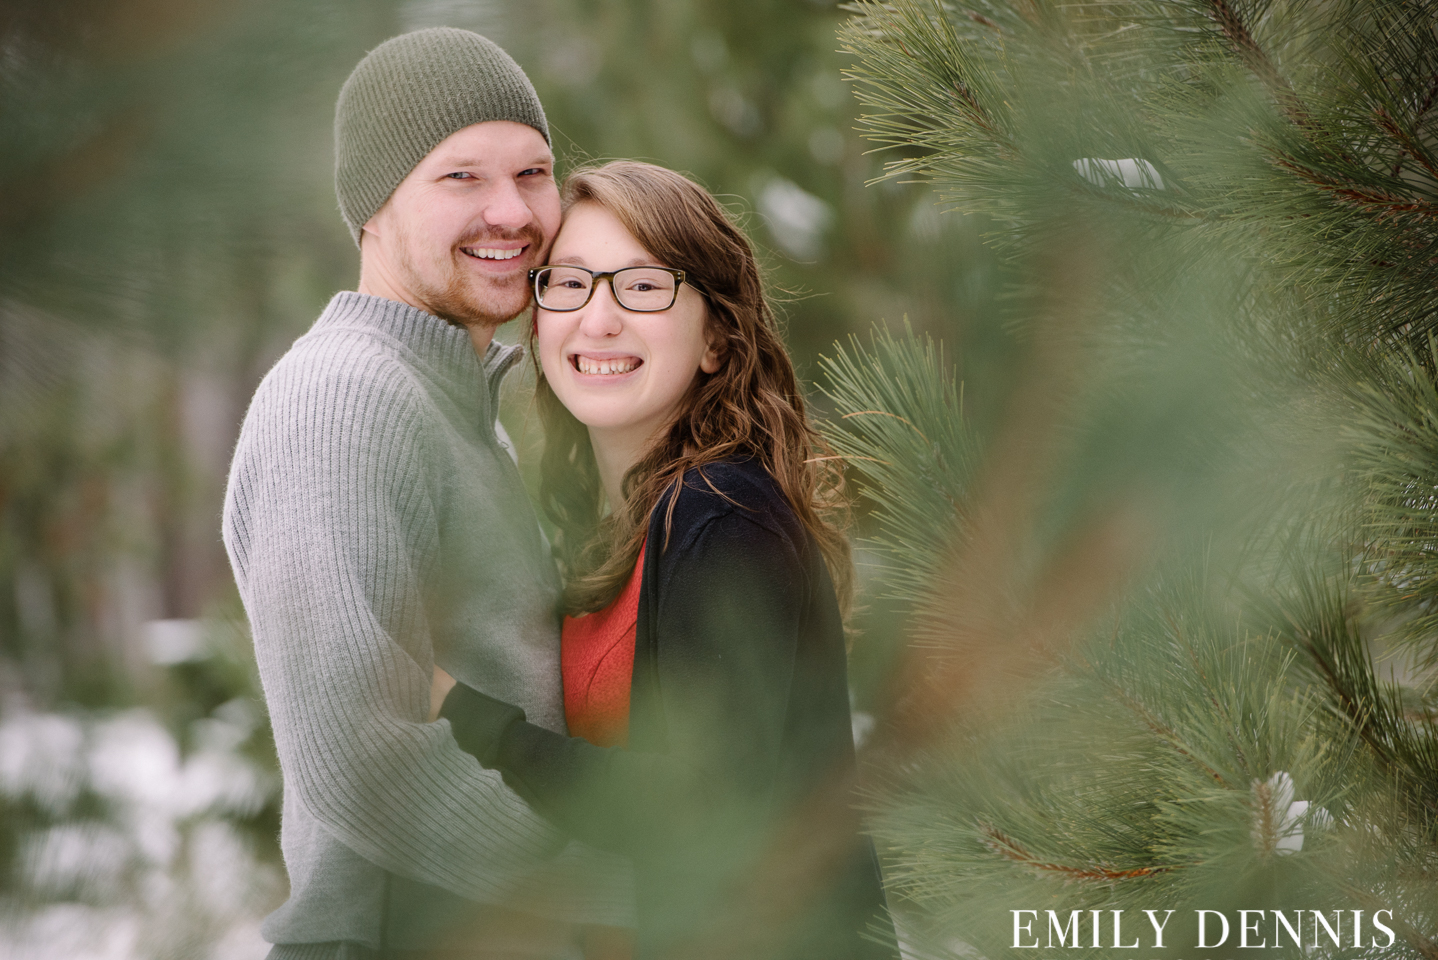 EMILY_DENNIS_PHOTOGRAPHY_engagement-15